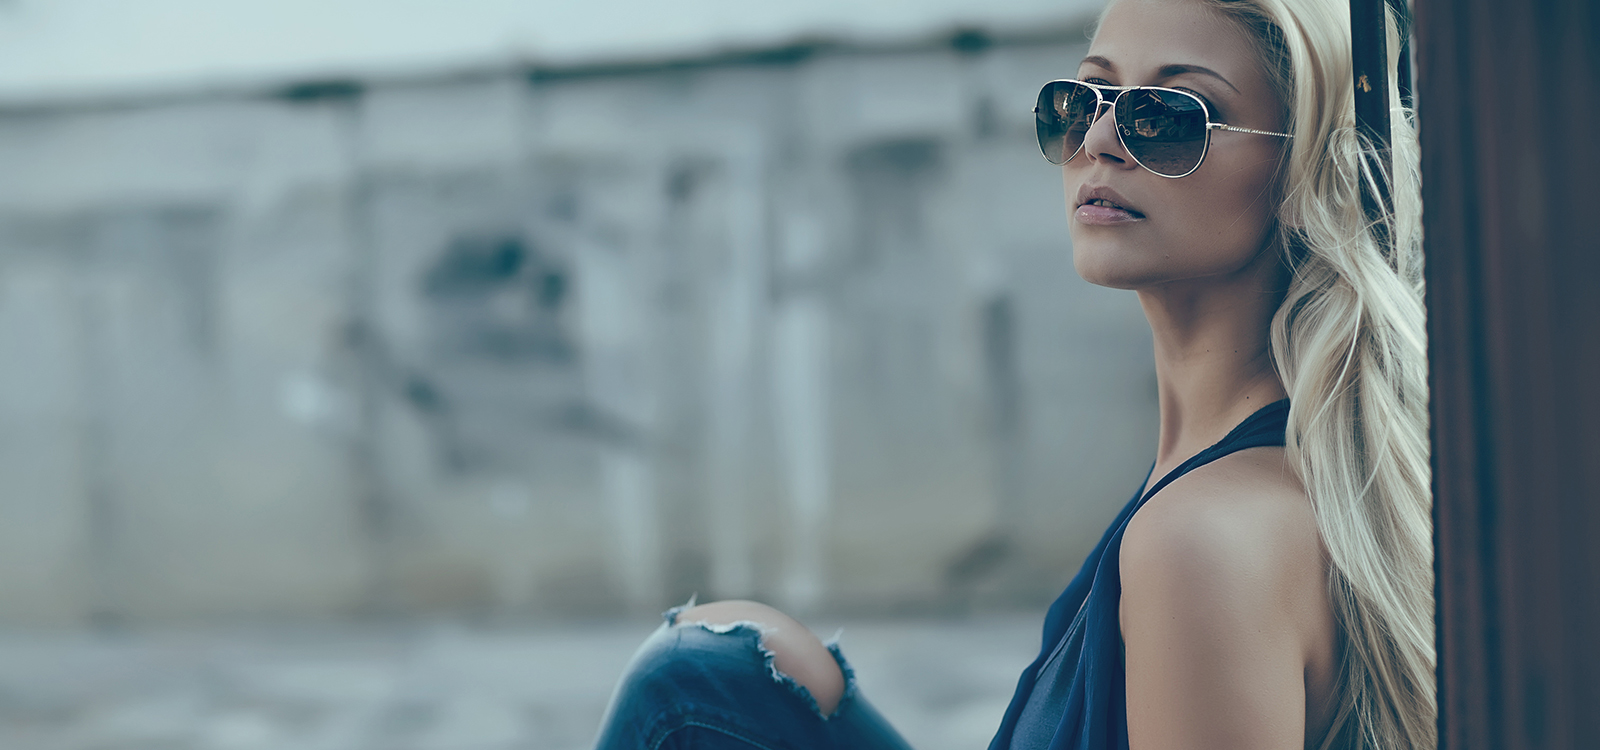 portrait of sexy woman with sunglasses